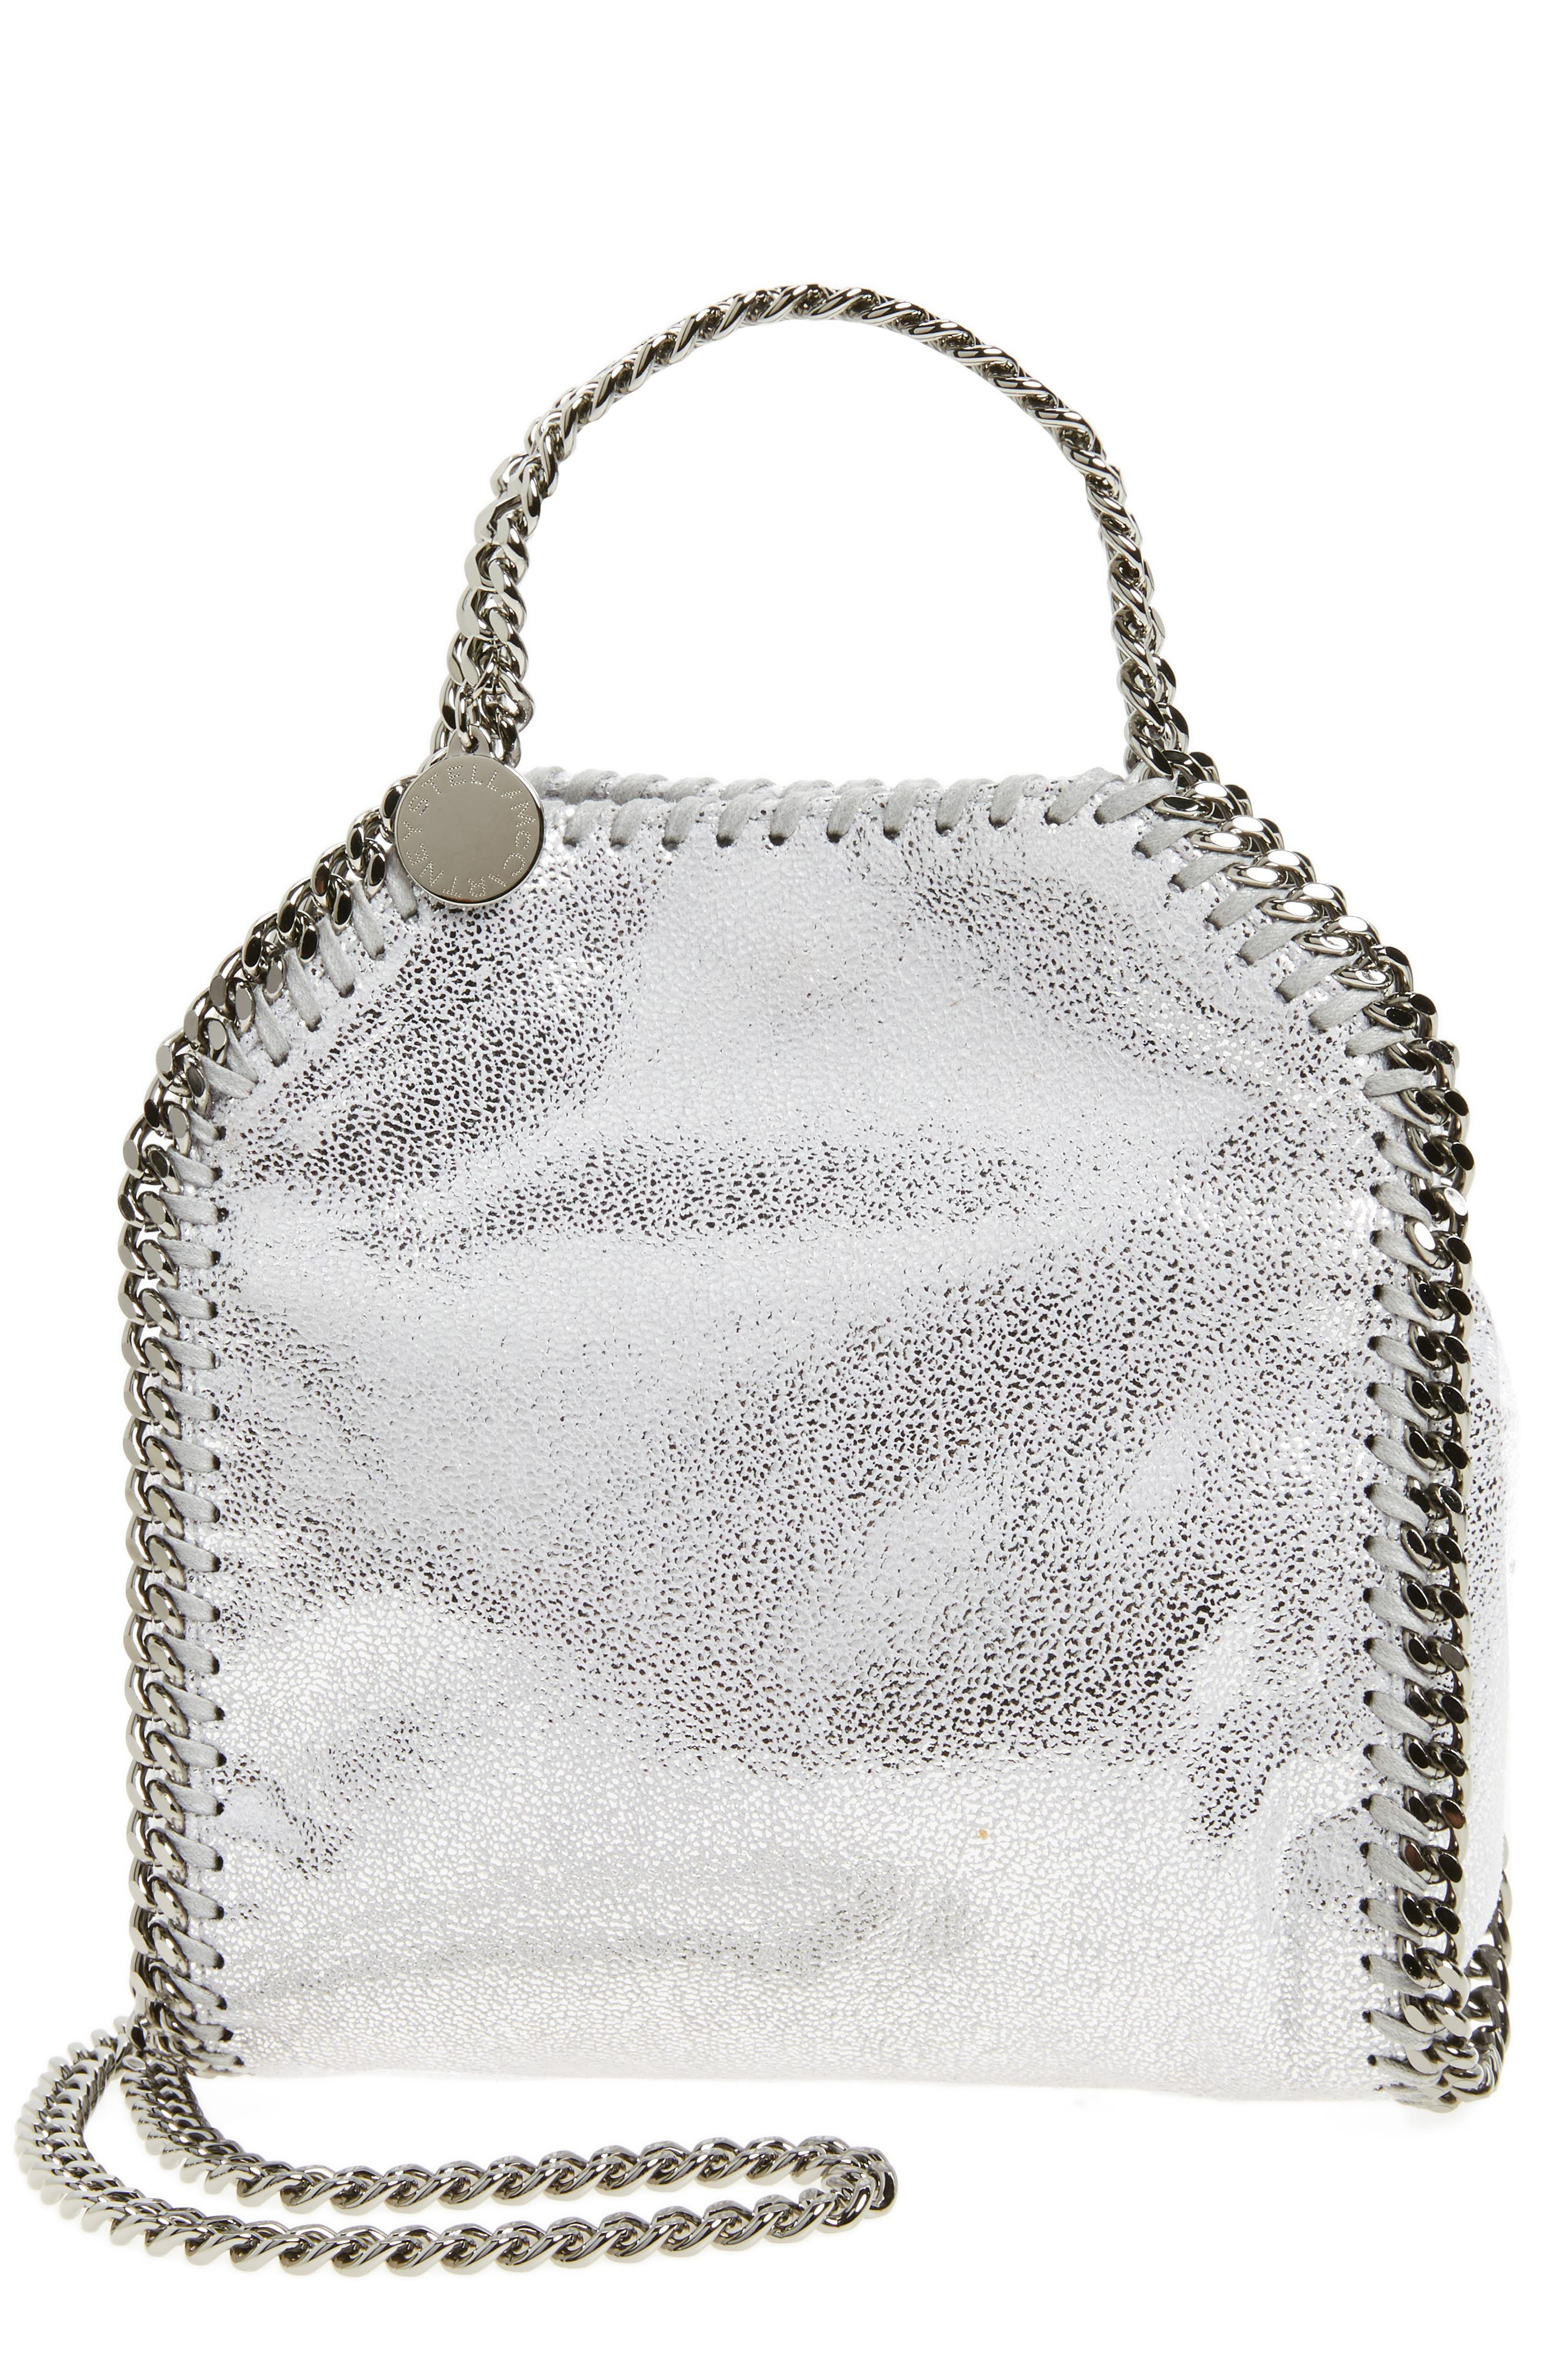 Alternate Image 1 Selected - Stella McCartney 'Tiny Falabella' Metallic Faux Leather Crossbody Bag